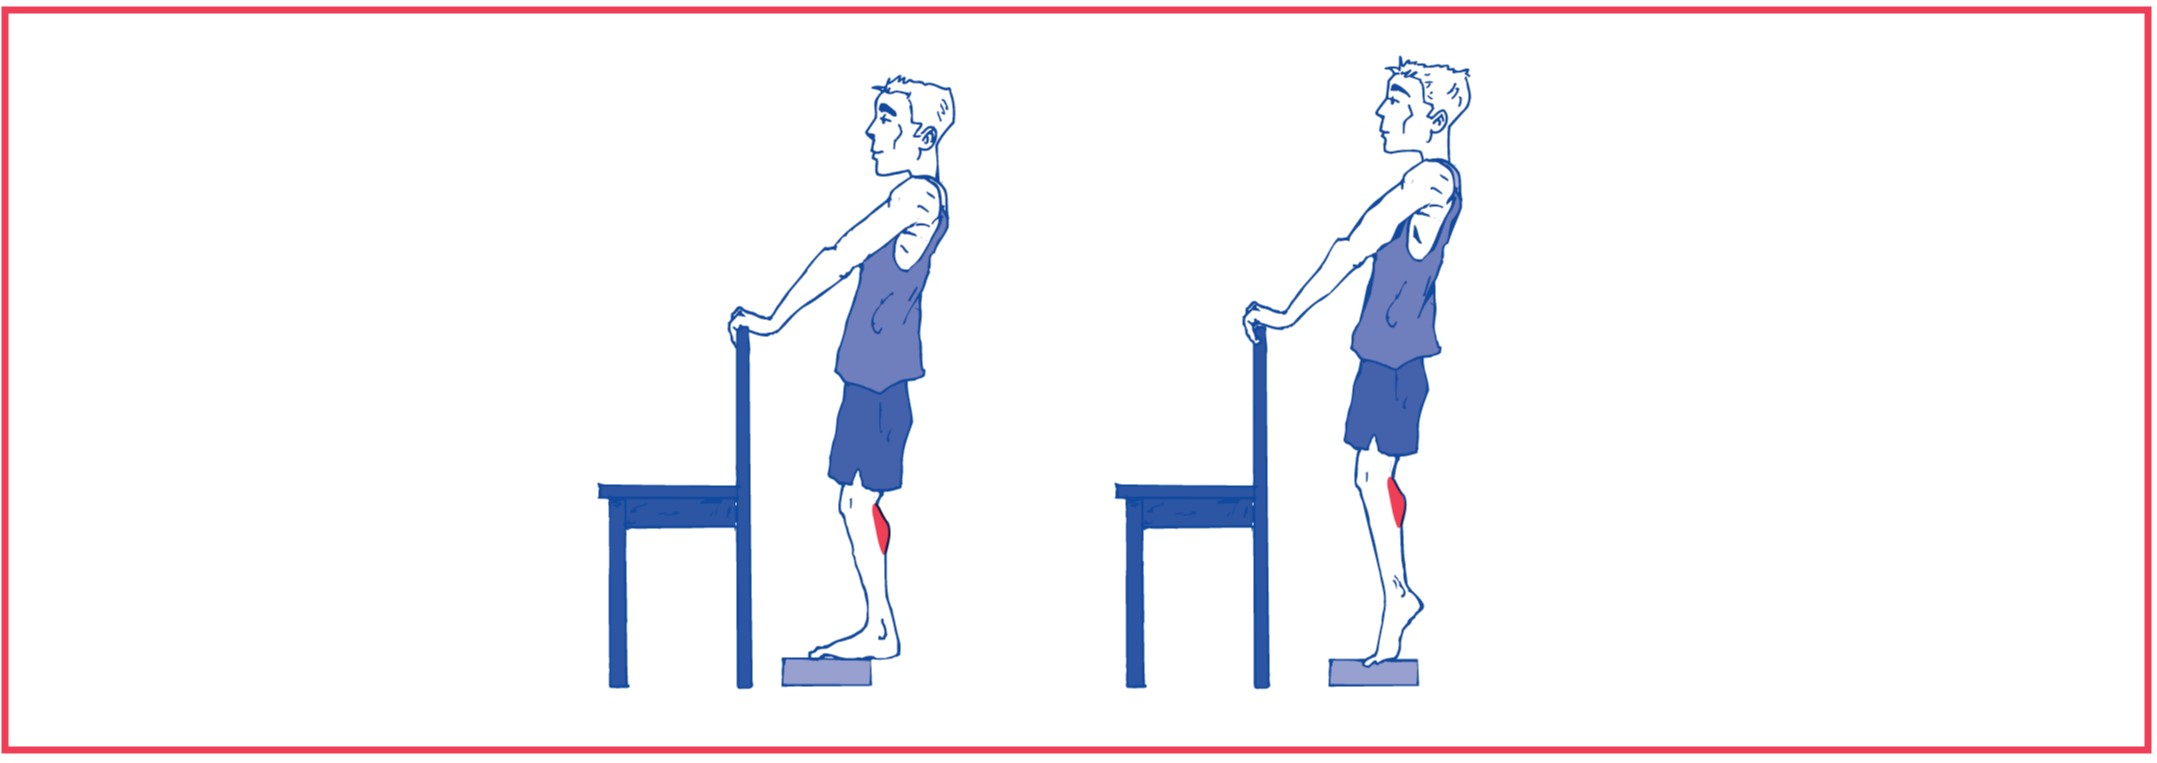 5. Weight bearing exercise for calf muscles